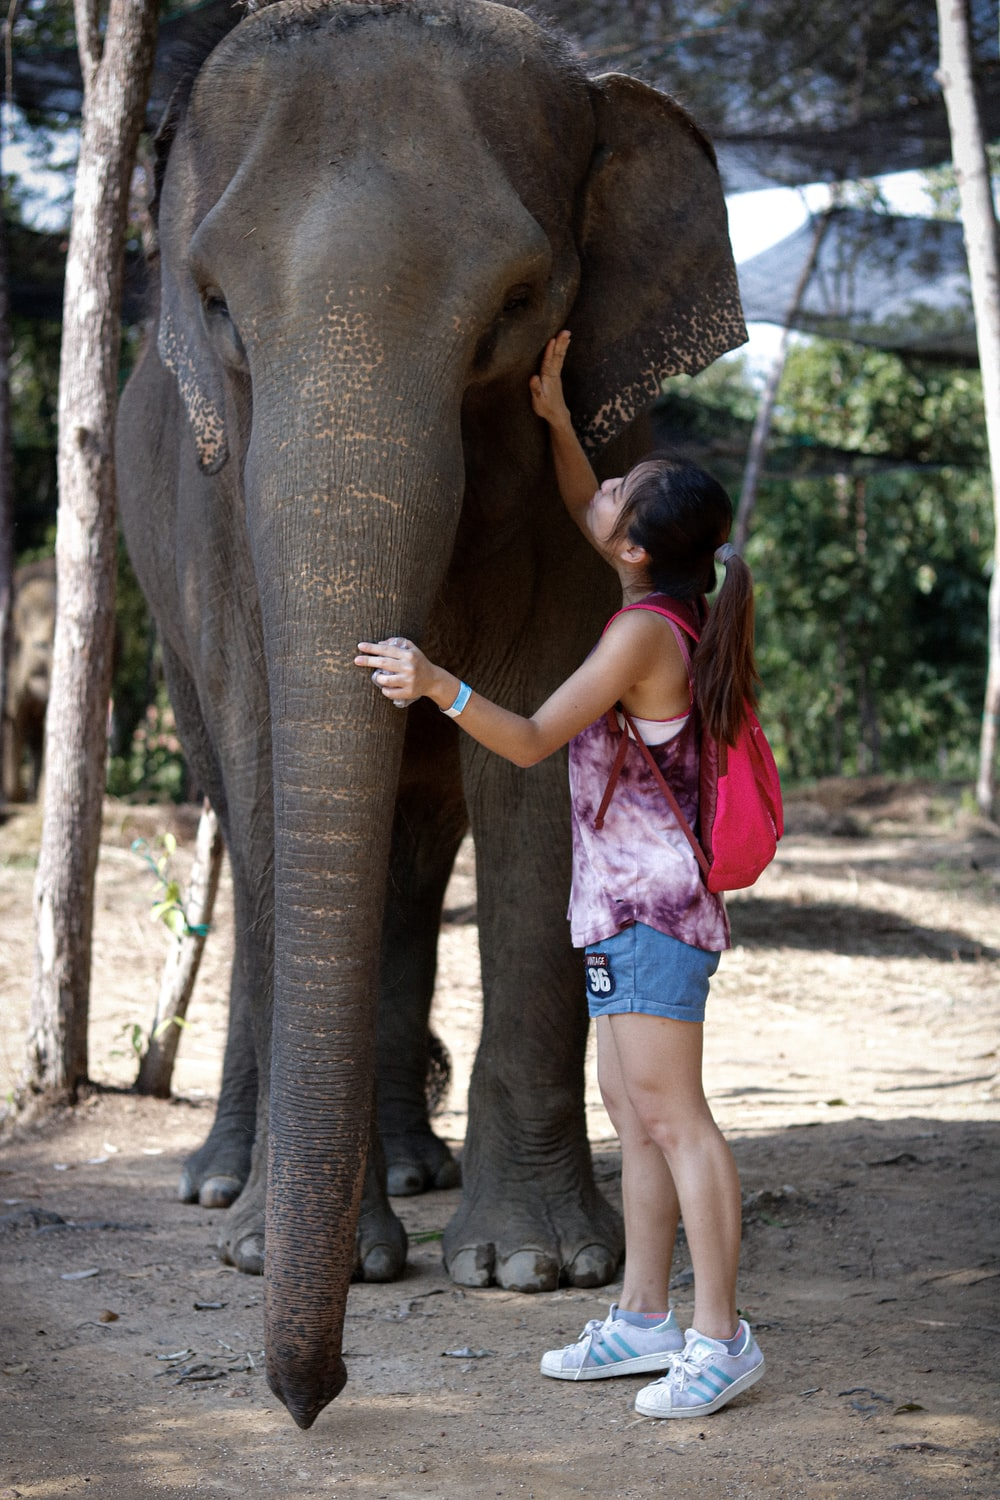 girl in pink tank top and blue shorts standing beside elephant during daytime